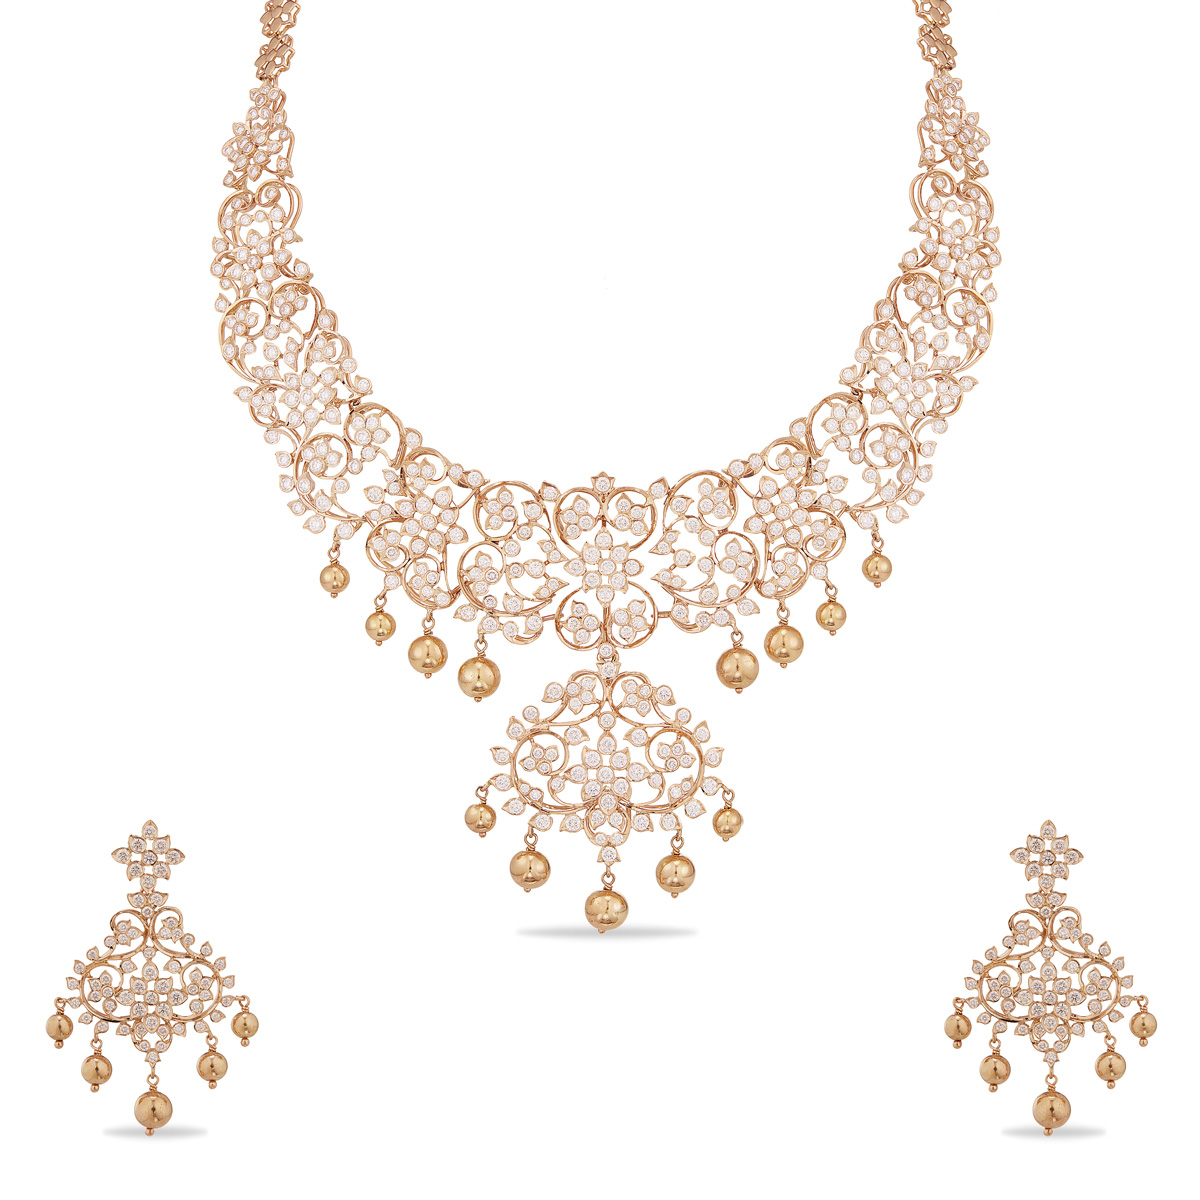 Enchanting Style Necklace